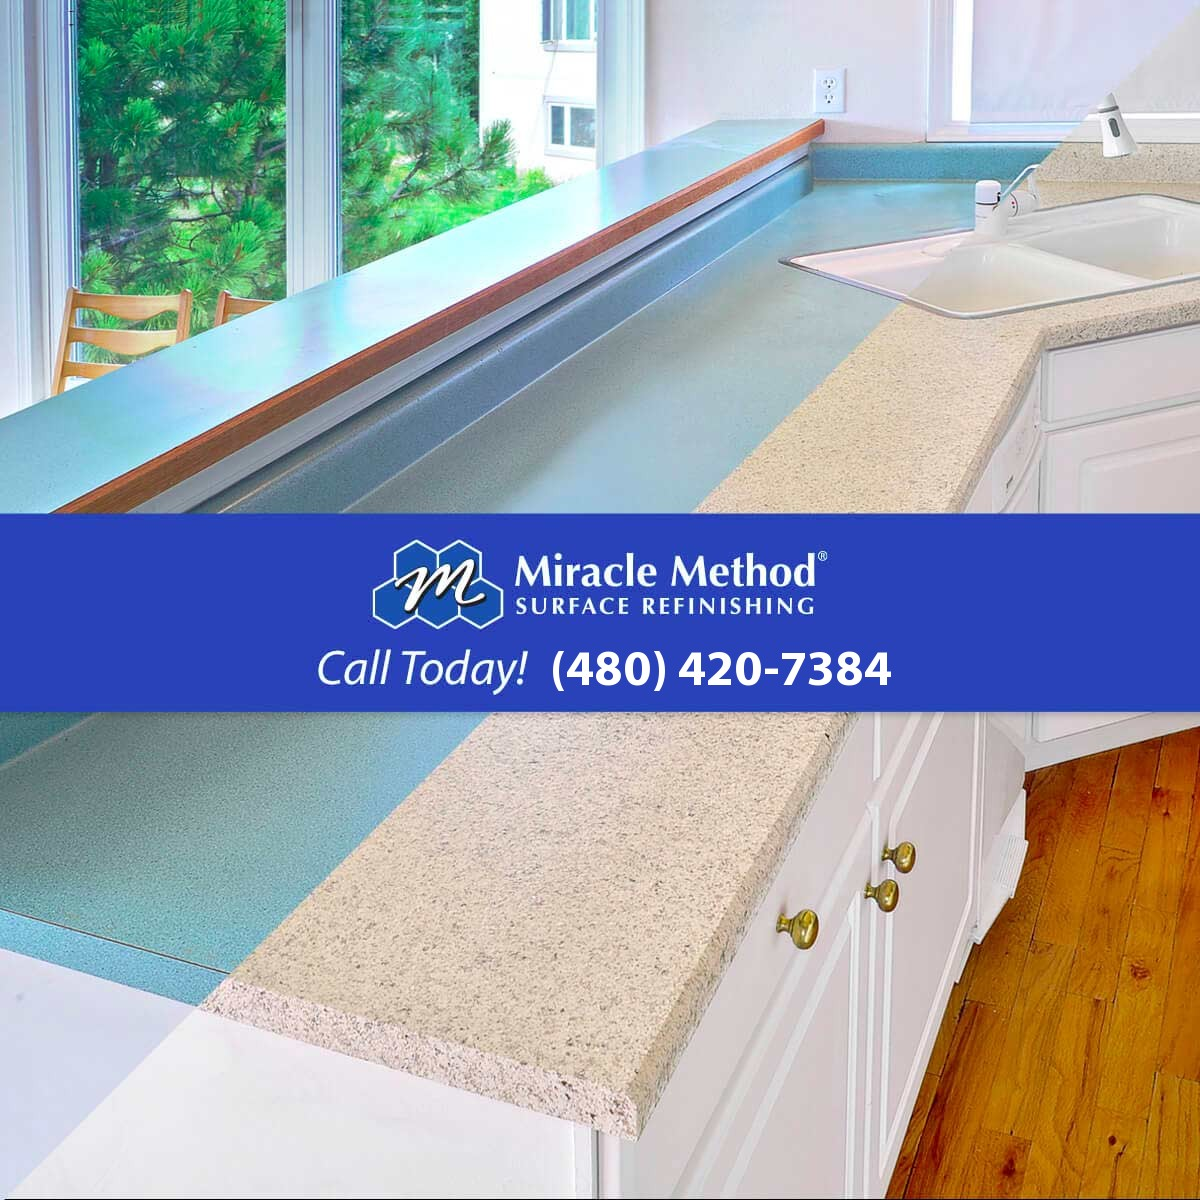 Bathtub Refinishing Reviews - Miracle Method Reviews - Tempe